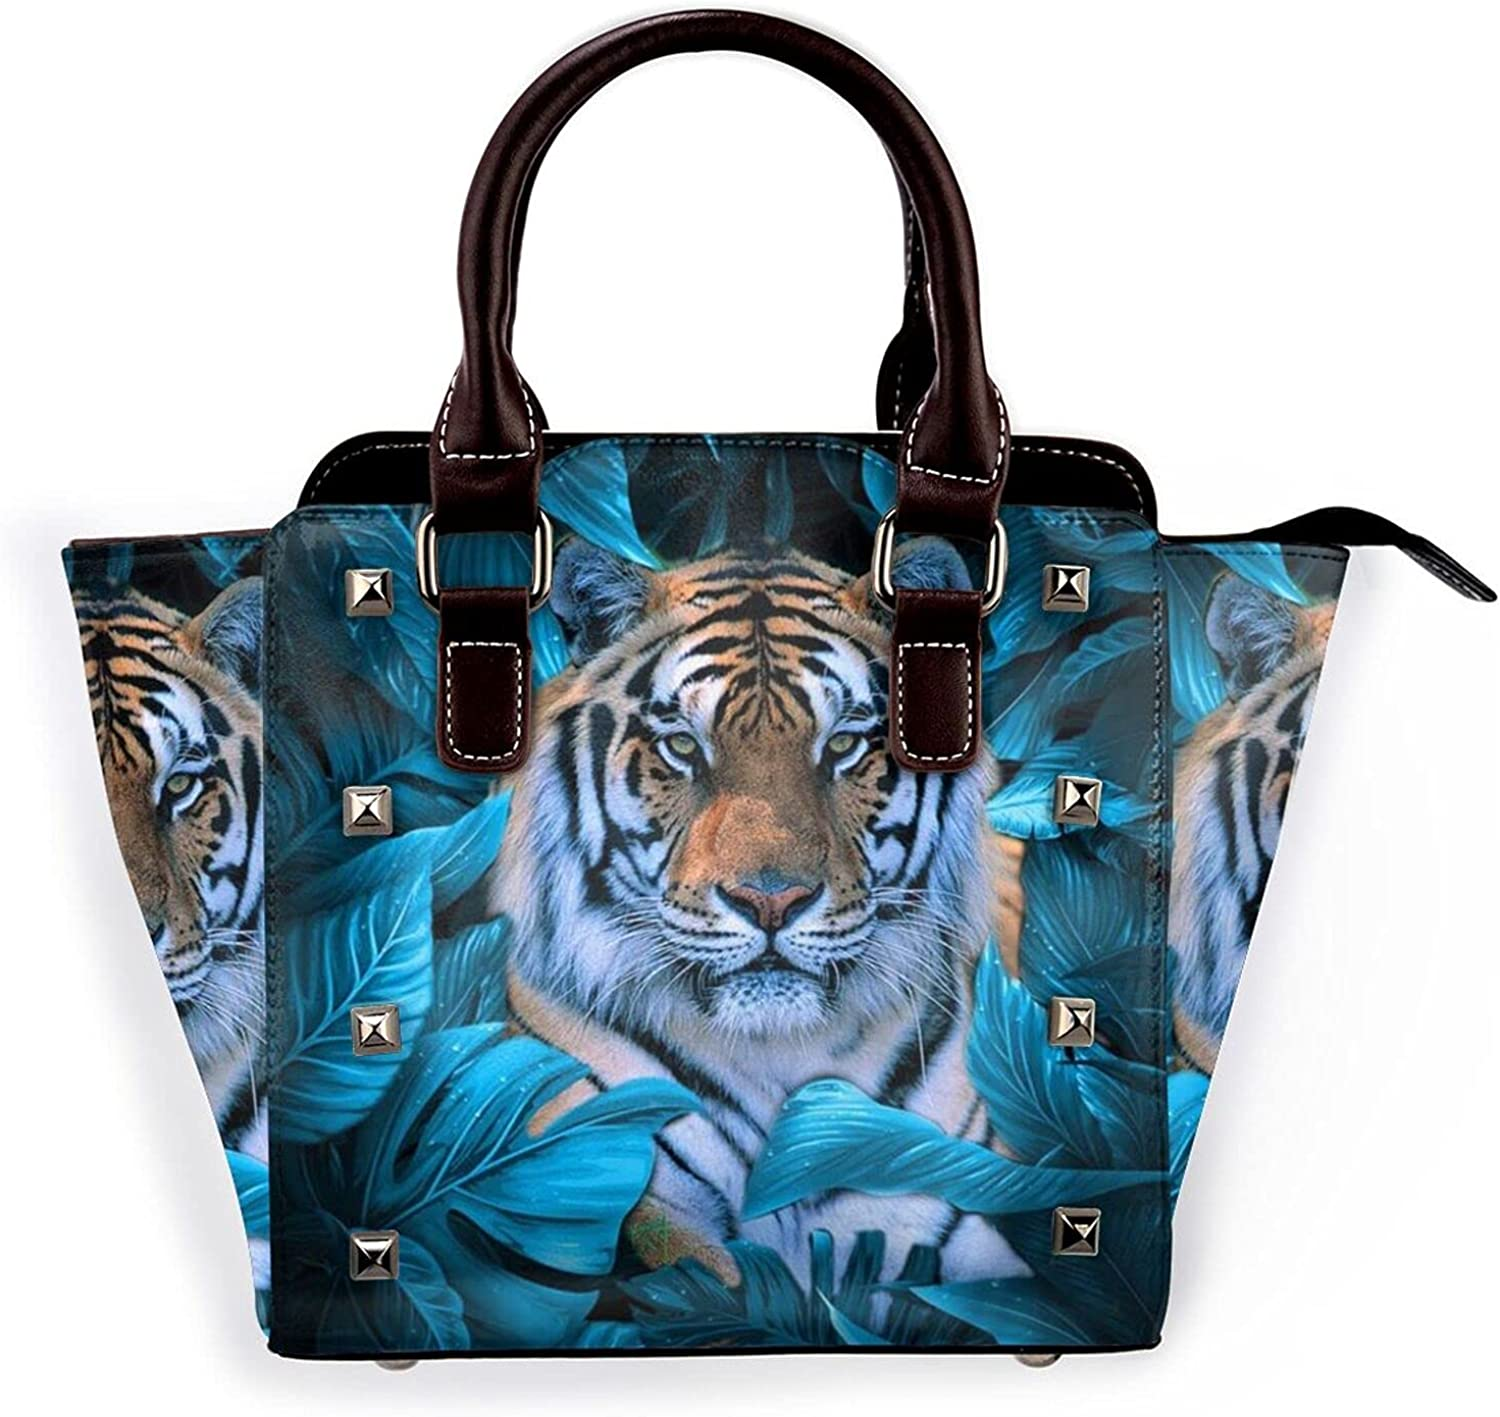 African Wildlife Tiger Womens Leather Rivet Unique Bag Shoulder Discount is also underway Sale Special Price